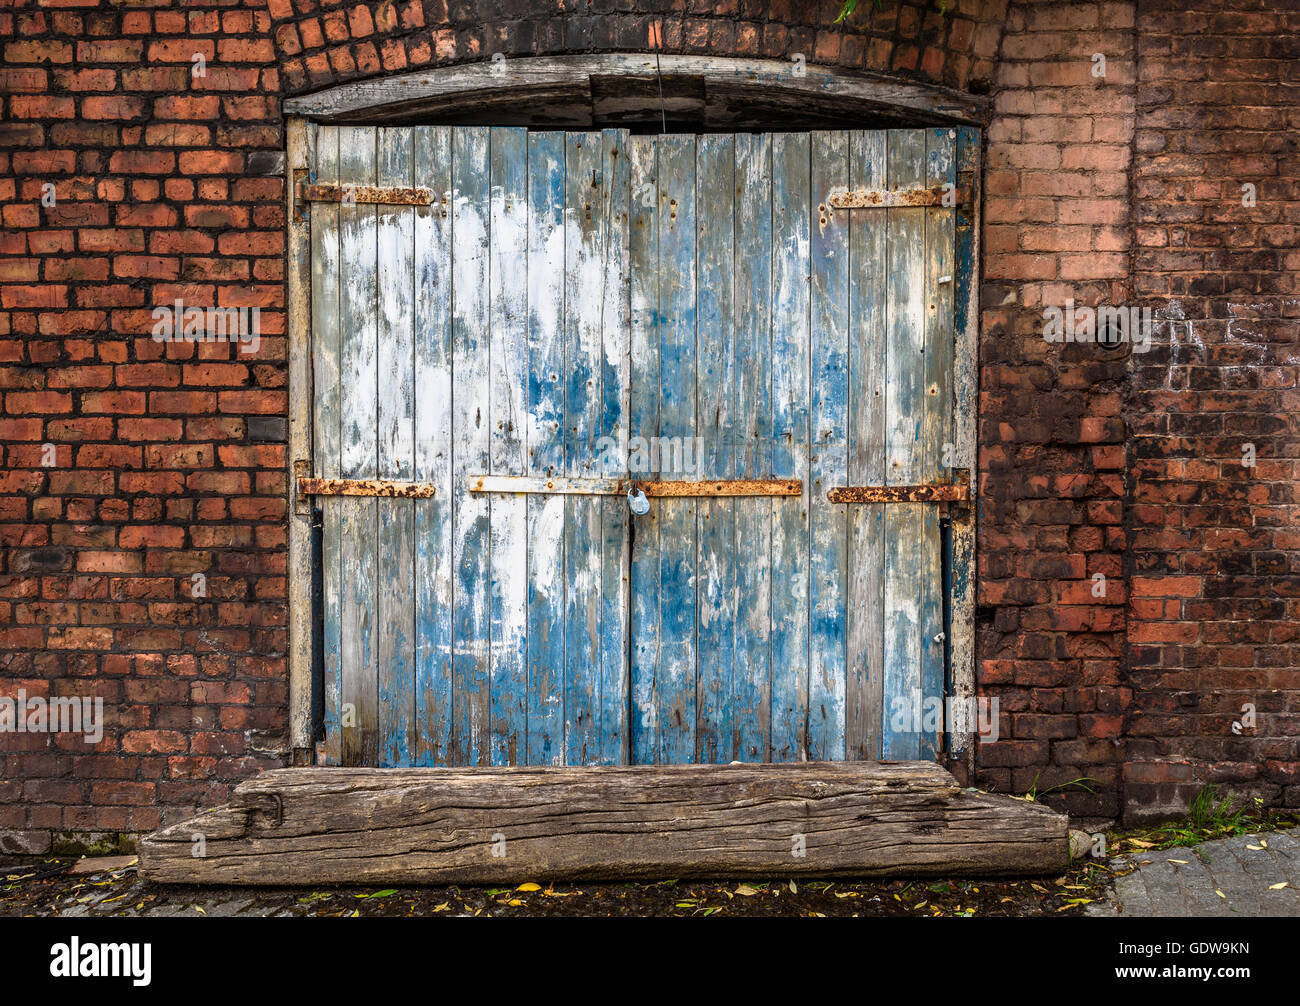 Old Brick Warehouse Shed With Grungy Wooden Doors.